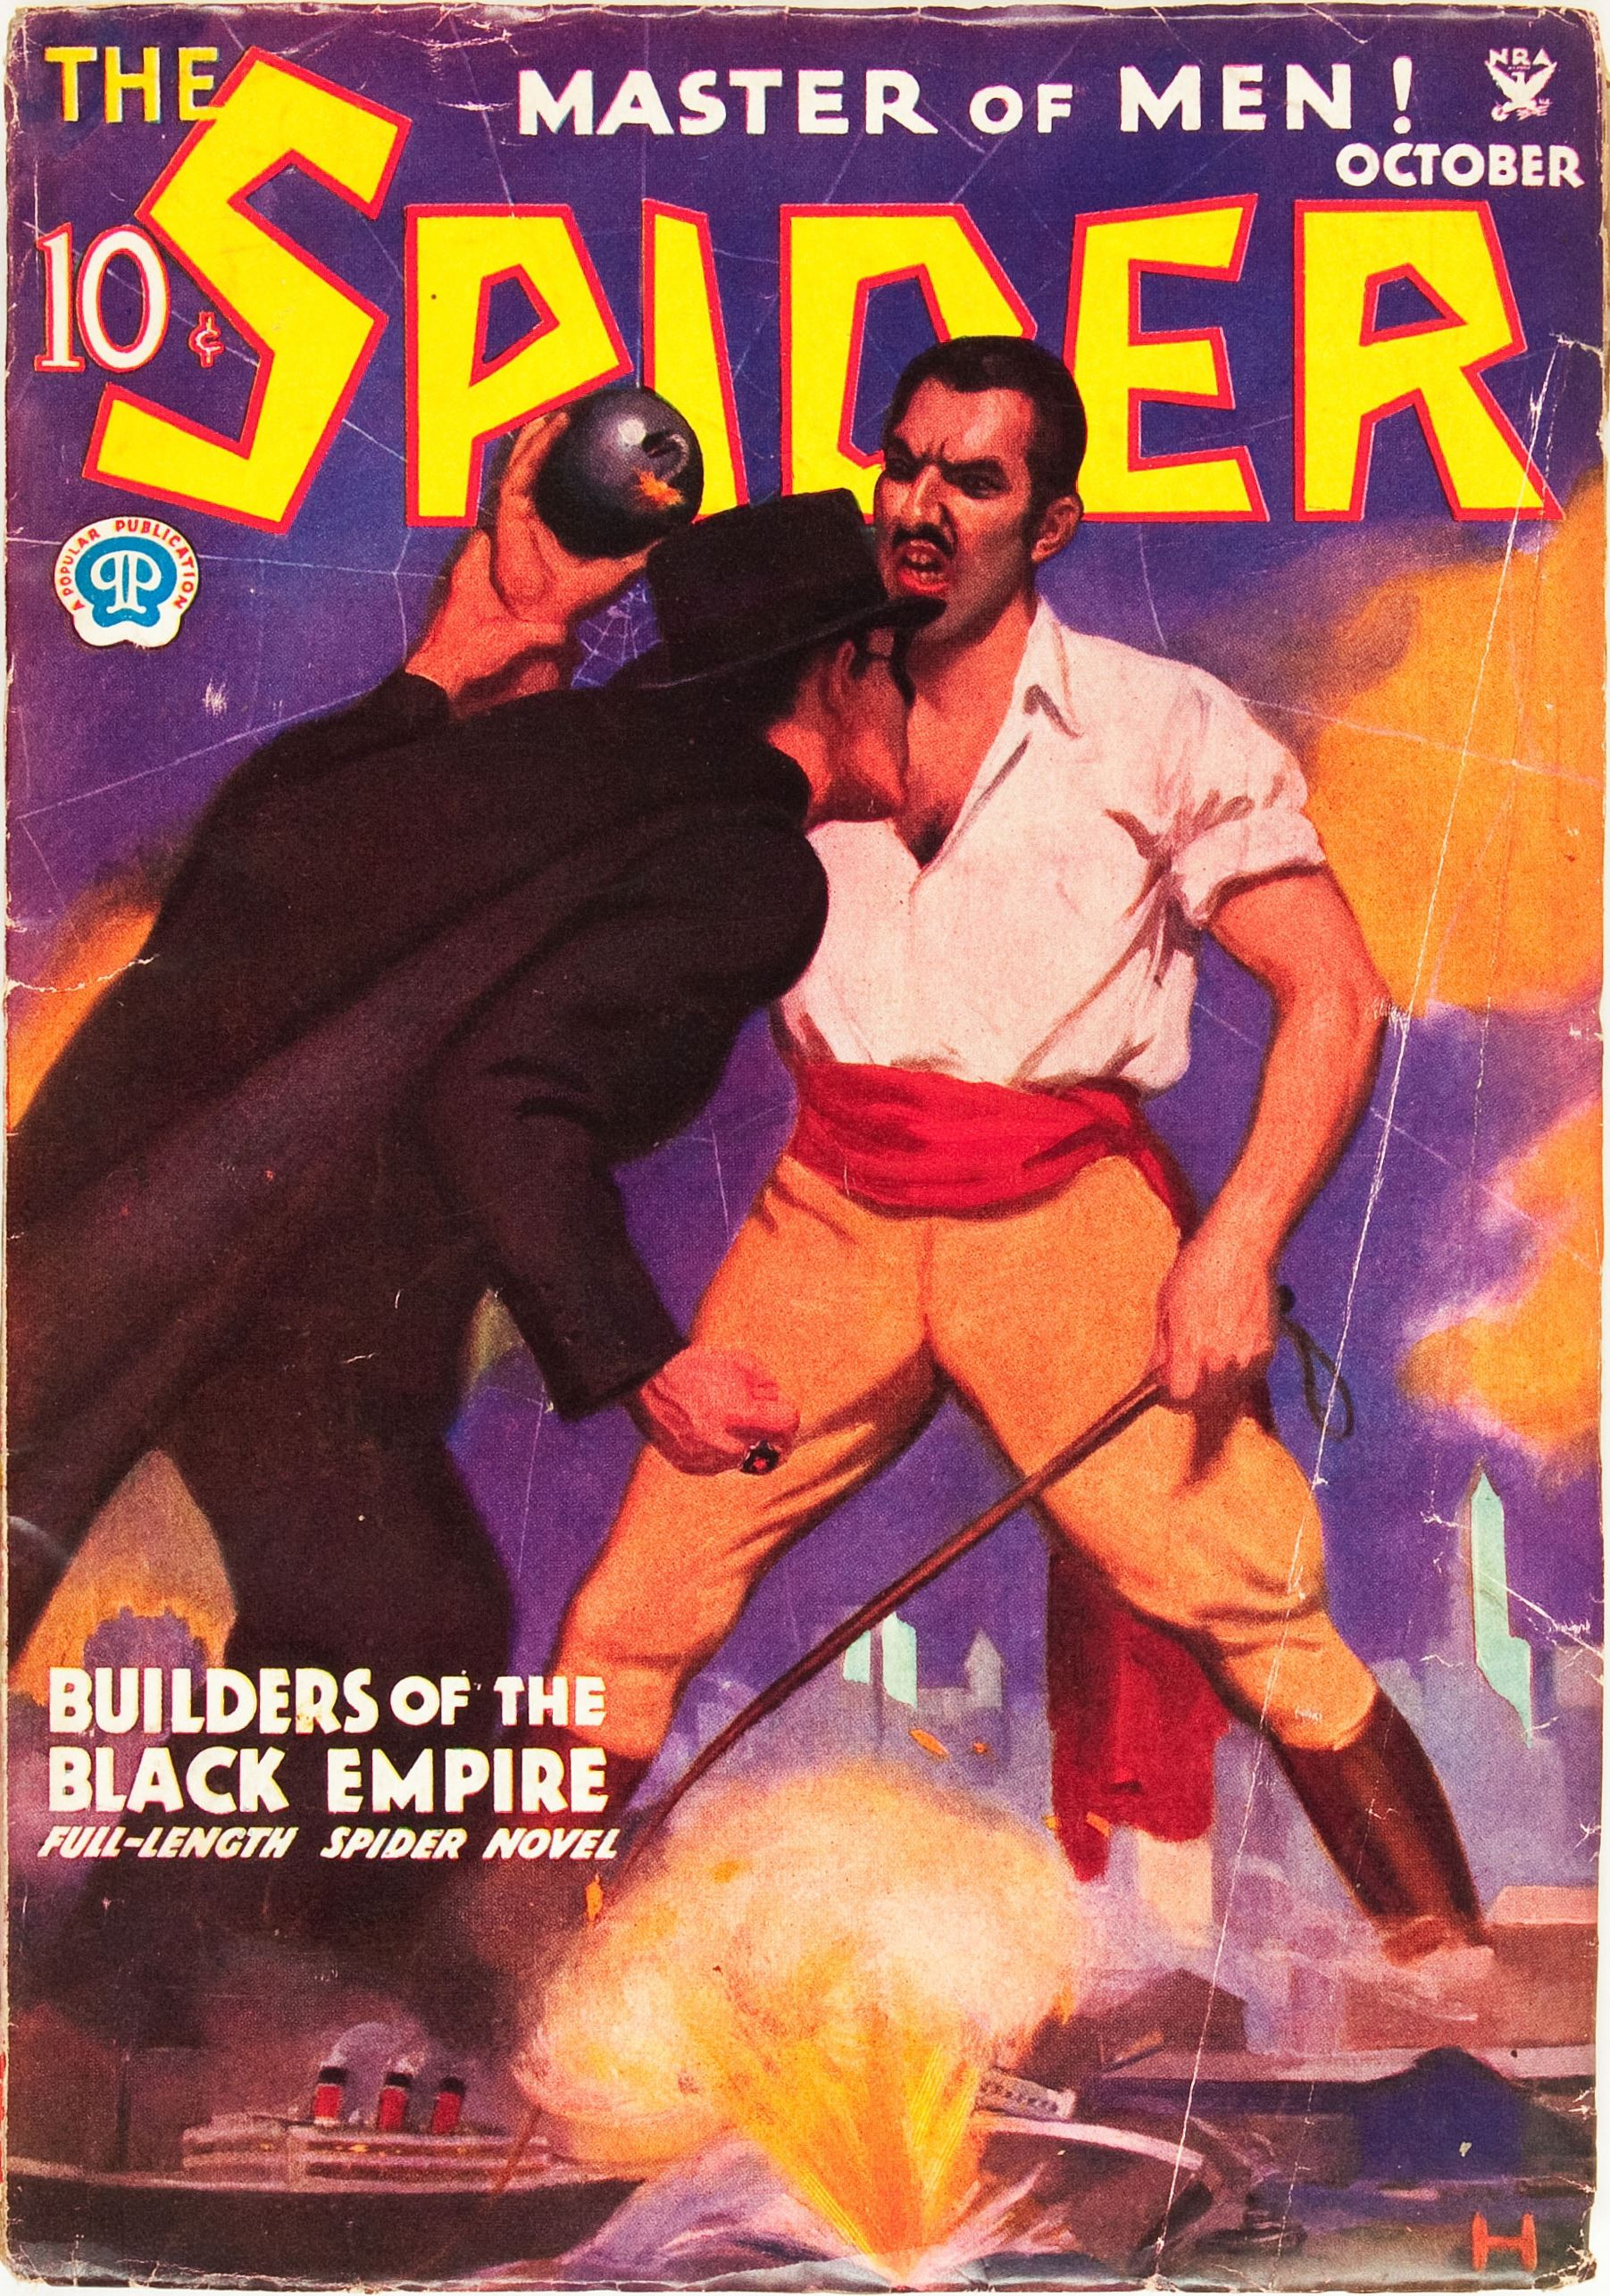 The Spider - October 1934